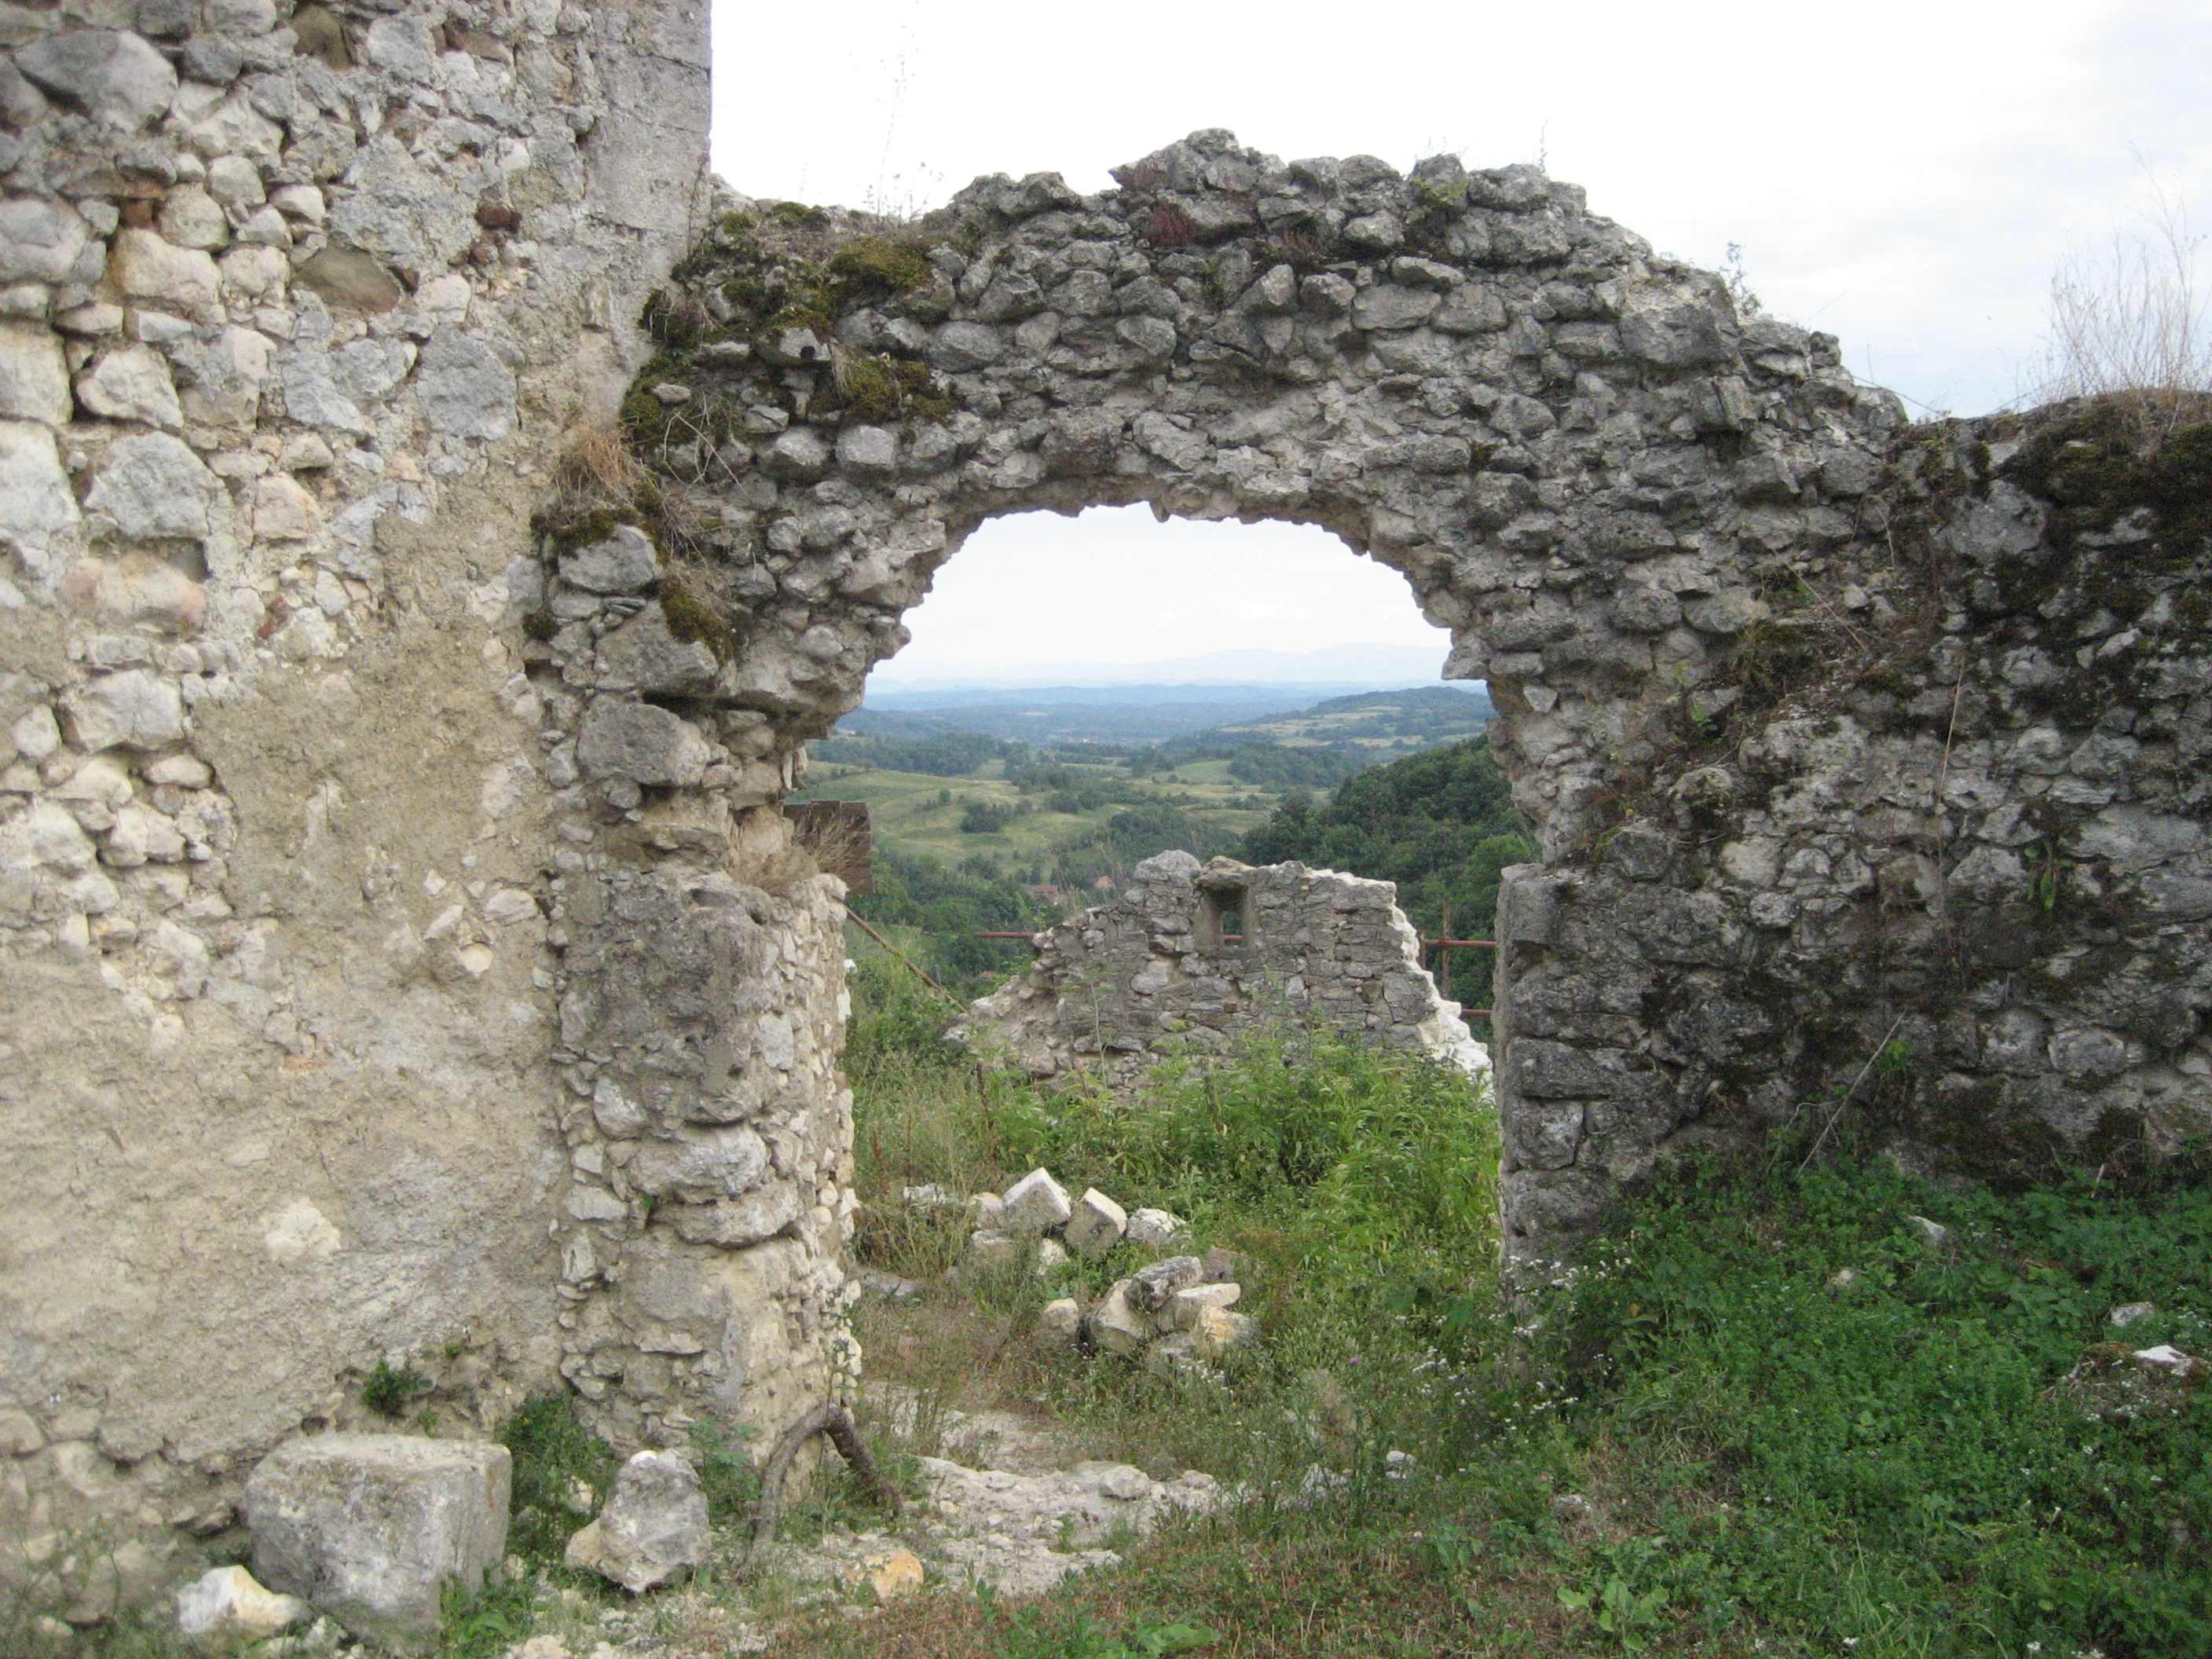 https://upload.wikimedia.org/wikipedia/commons/c/c2/Castle_Zrin%2C_Croatia-5.JPG